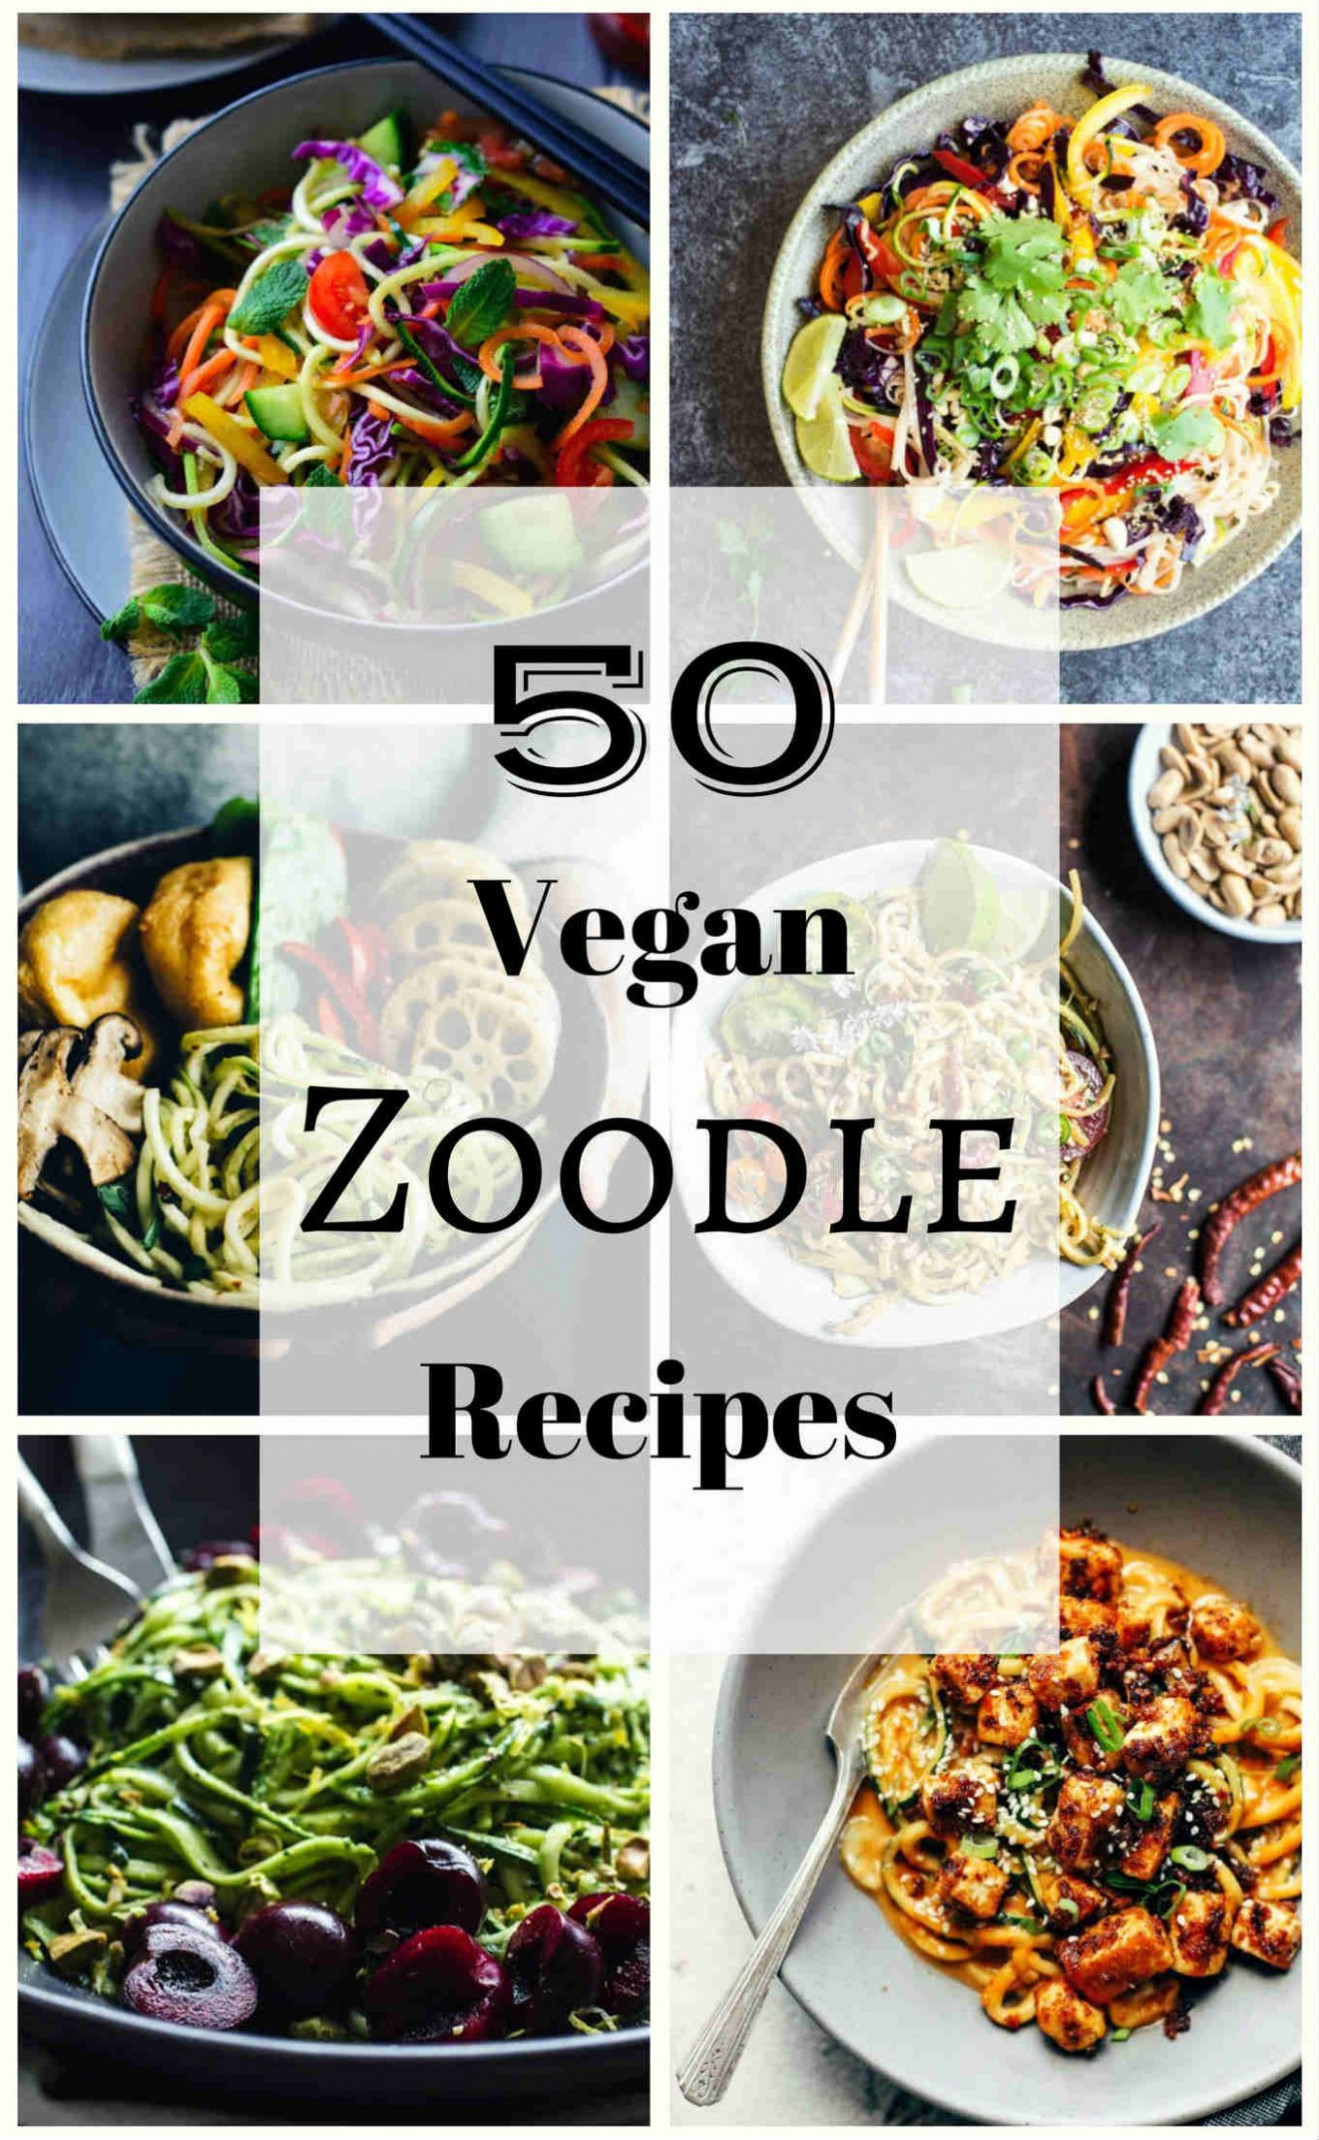 8 Vegan Zoodle (Zucchini Pasta) Recipes | The Stingy Vegan